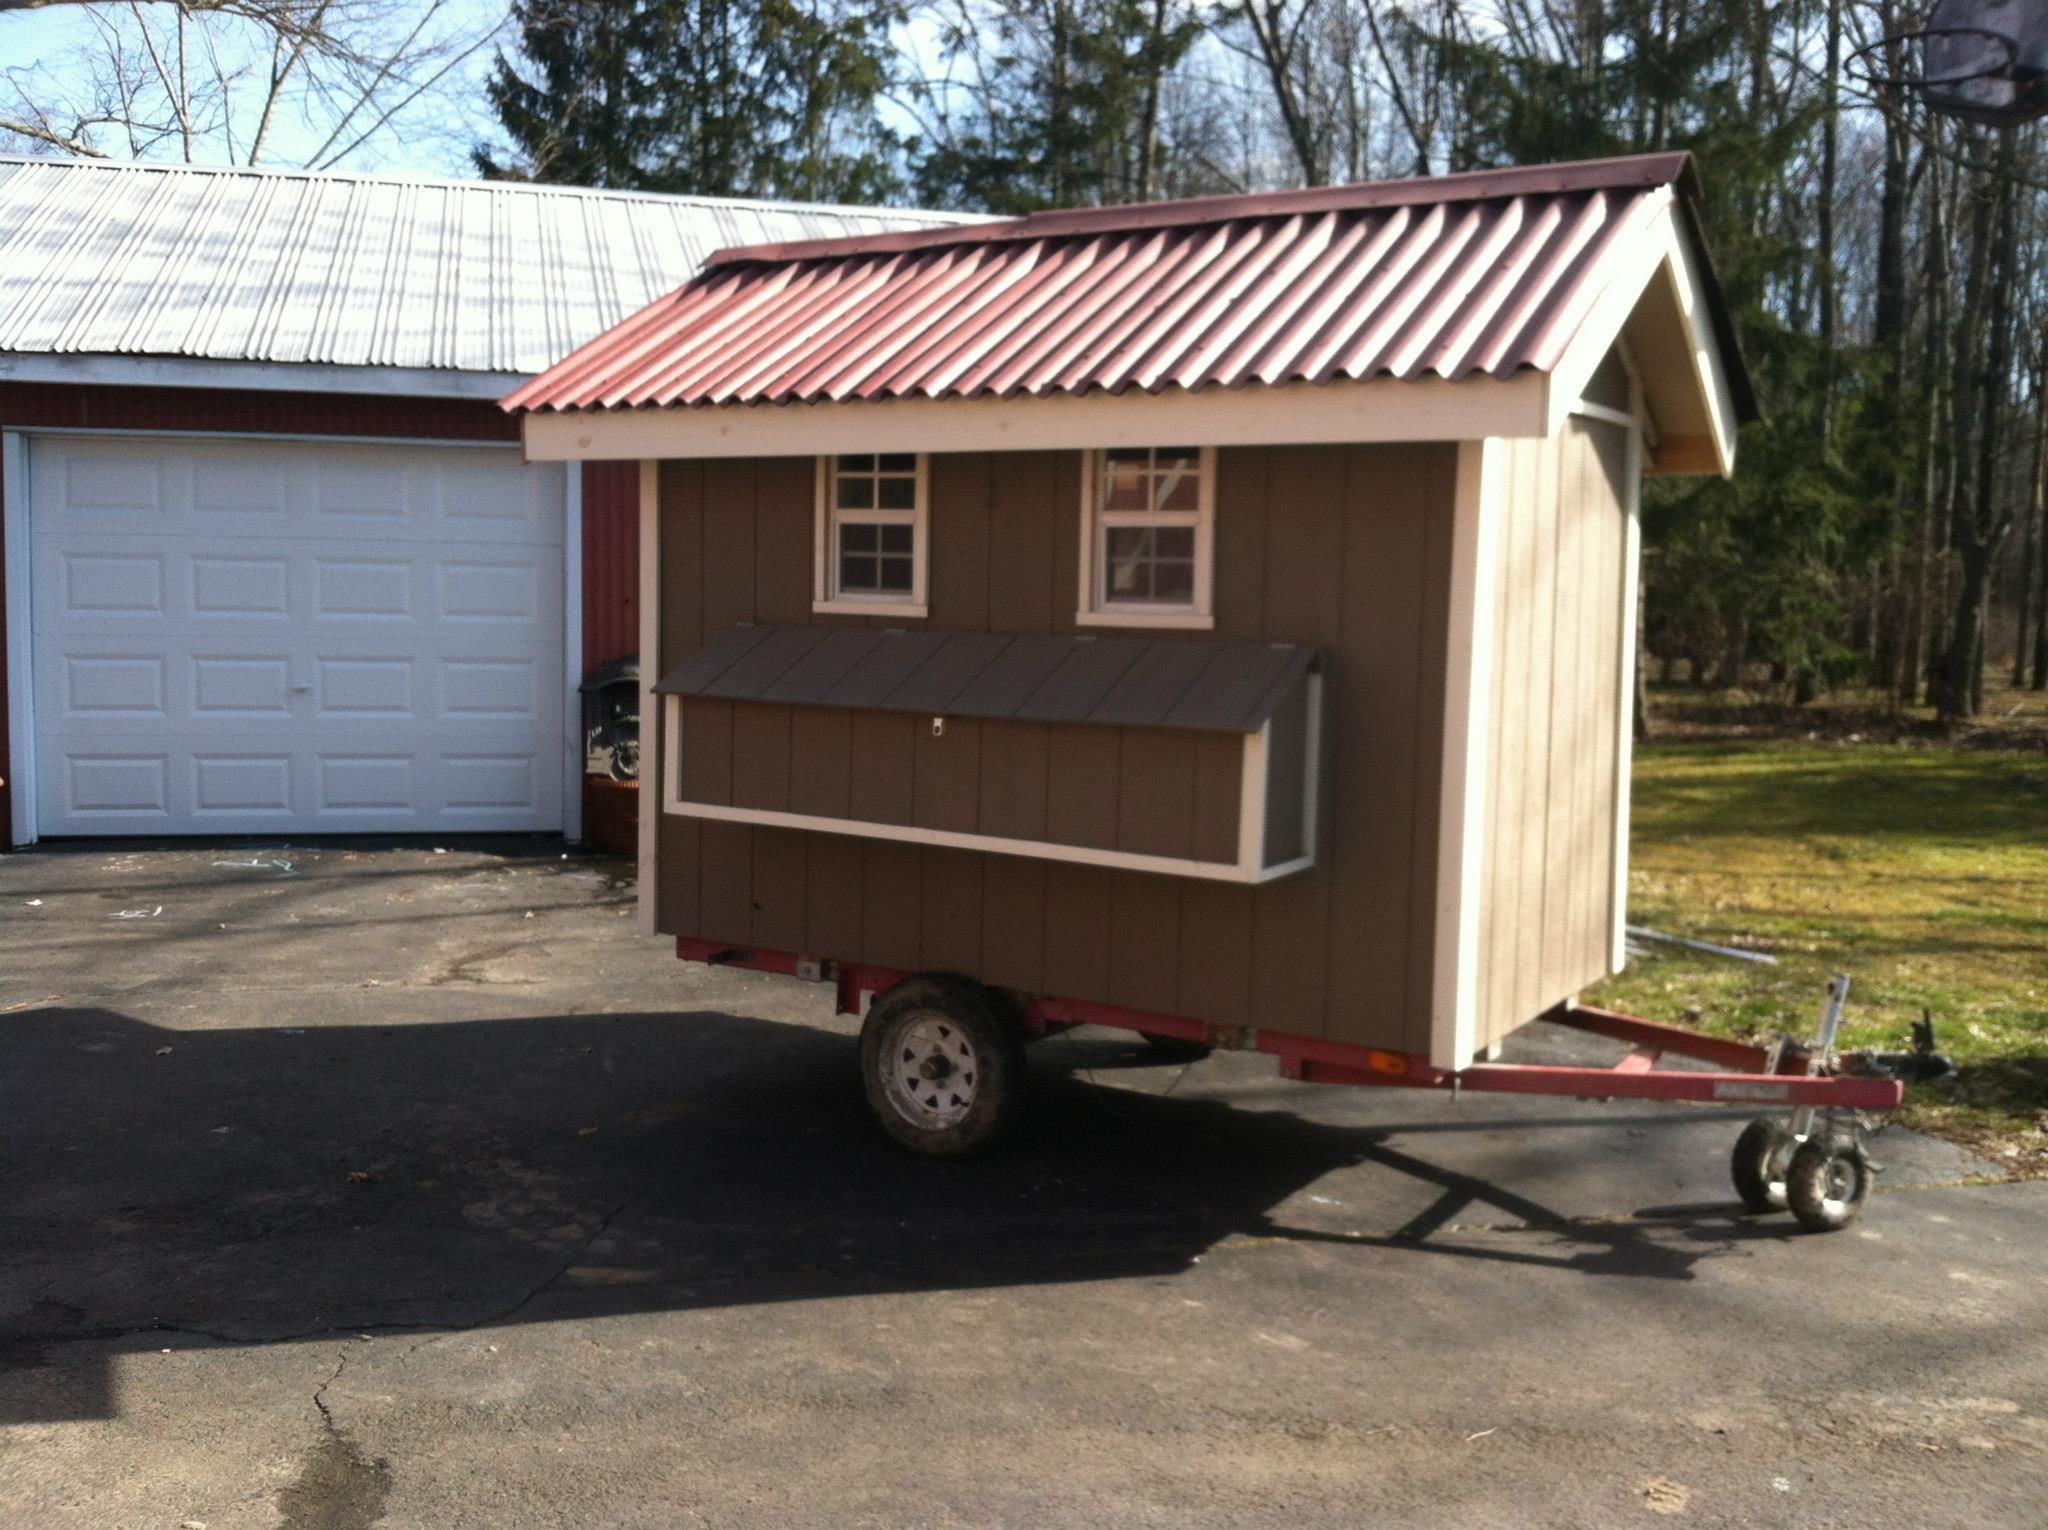 Owl moon farms chicken coop mobile coop pinterest for Mobile chicken coop plans